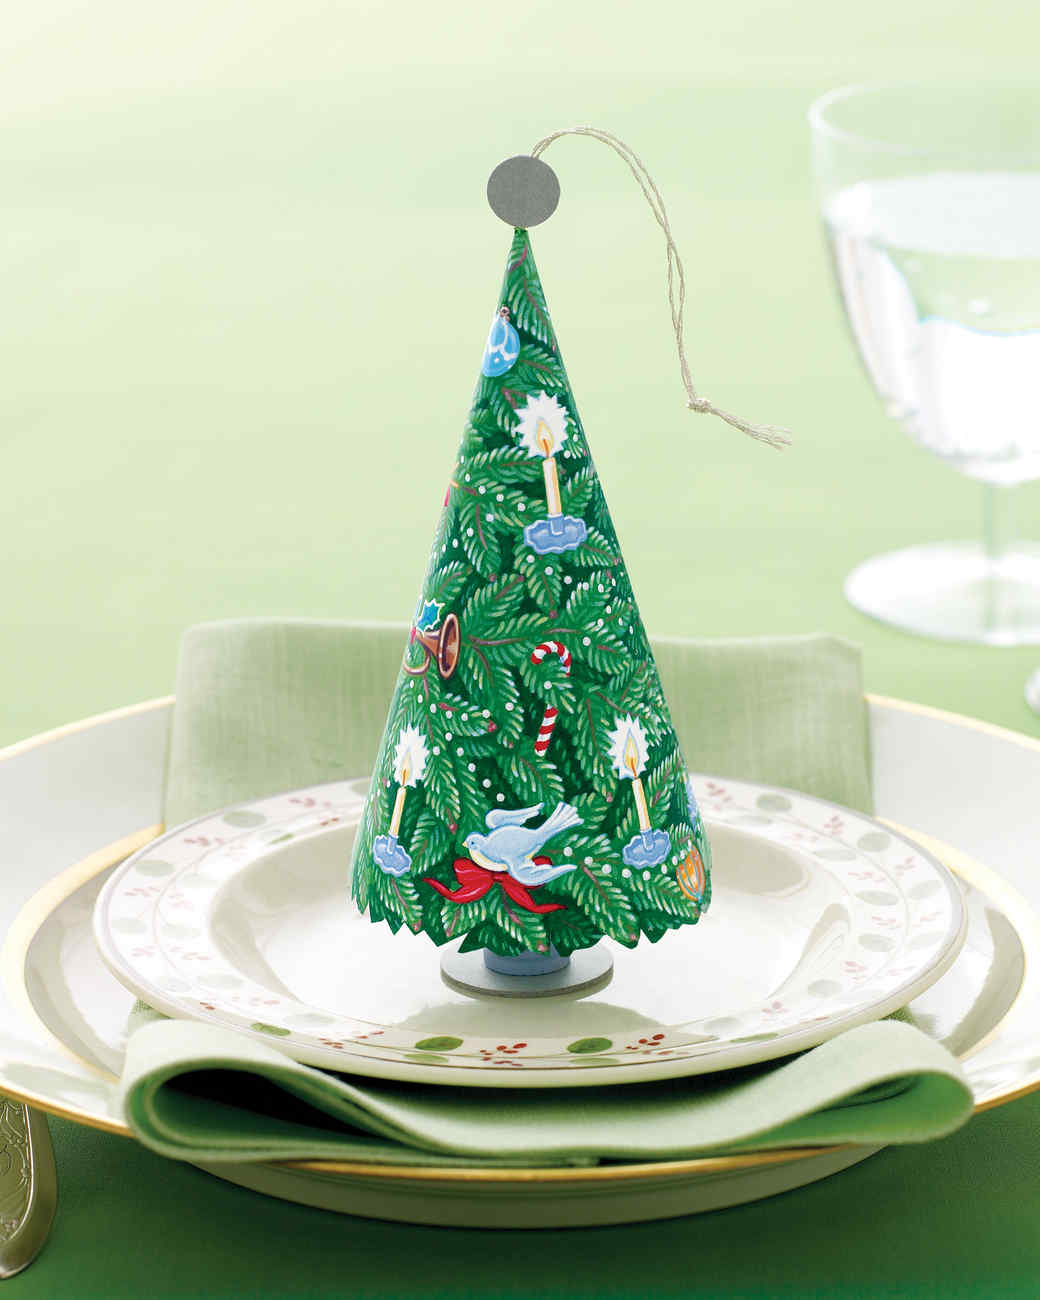 Clip Art and Templates for Christmas Decorations | Martha Stewart